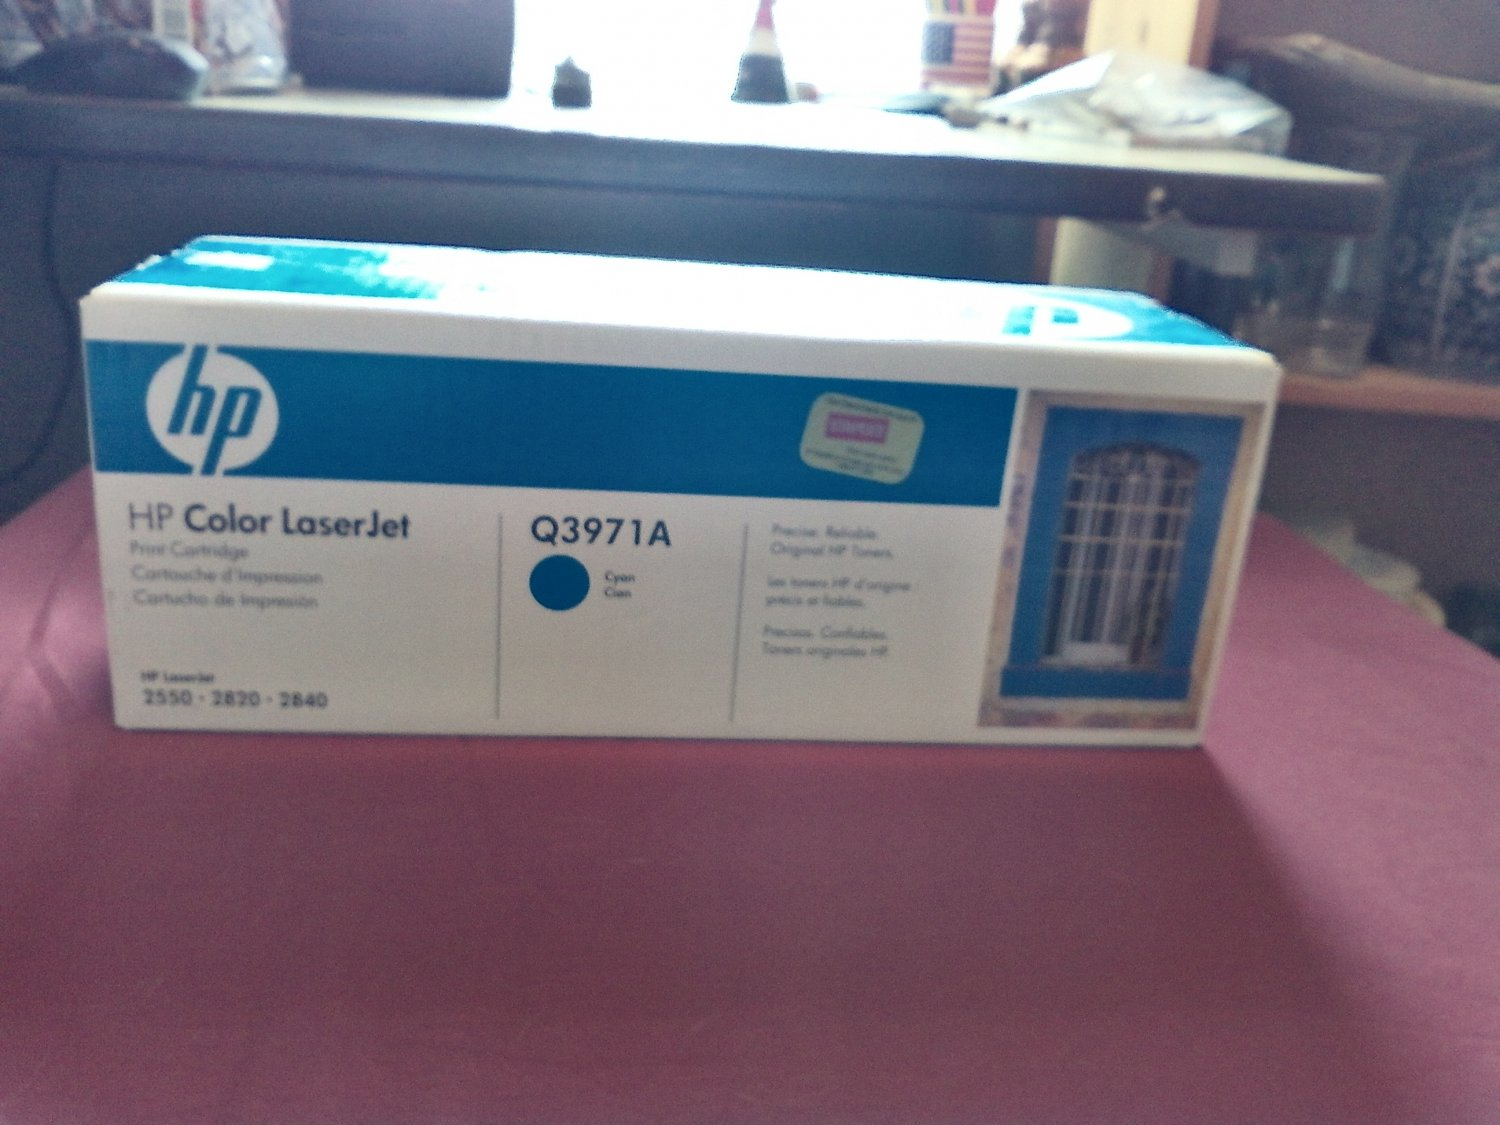 HP Color LaserJet Q3960A Black Print Cartridge NIP Hewlett Packard (SG)